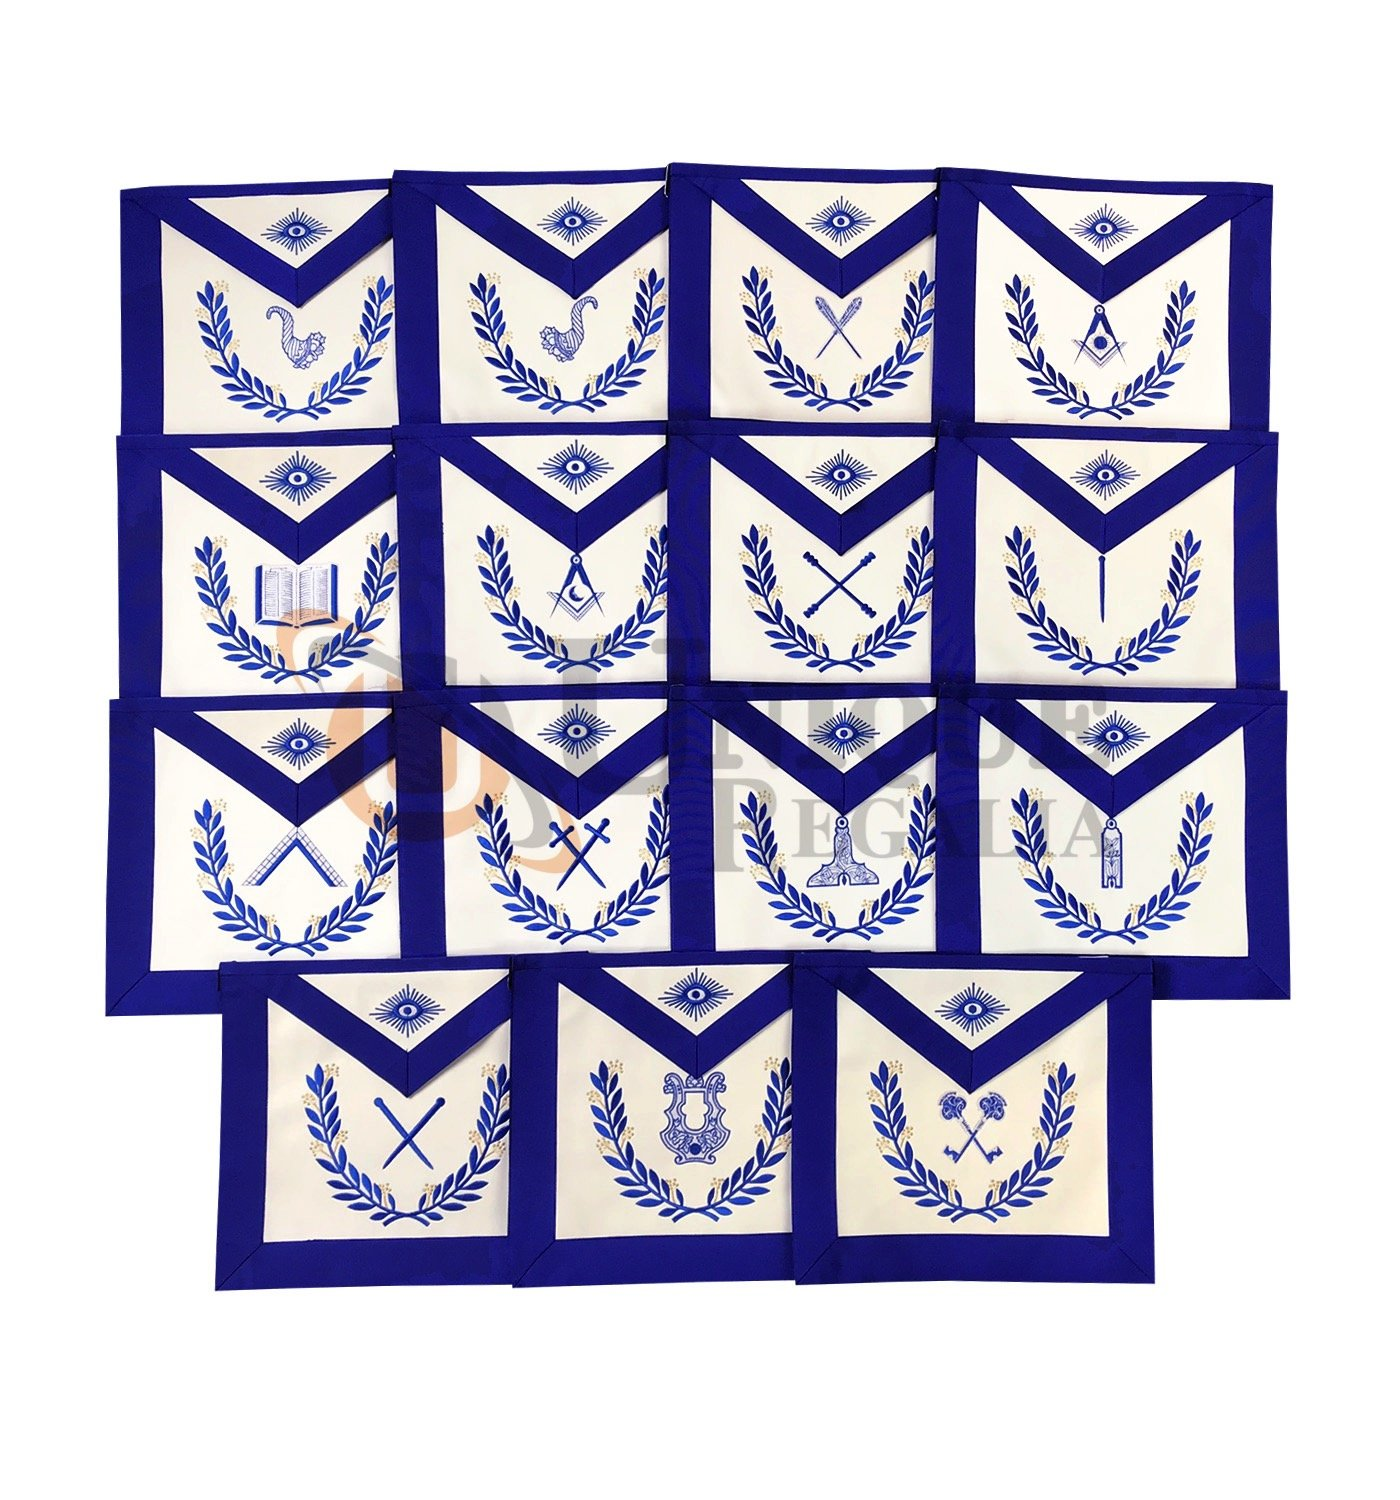 MasonicブルーLodge officers12 PiecesマシンEmbroidedエプロンセット   B074V7S4SM